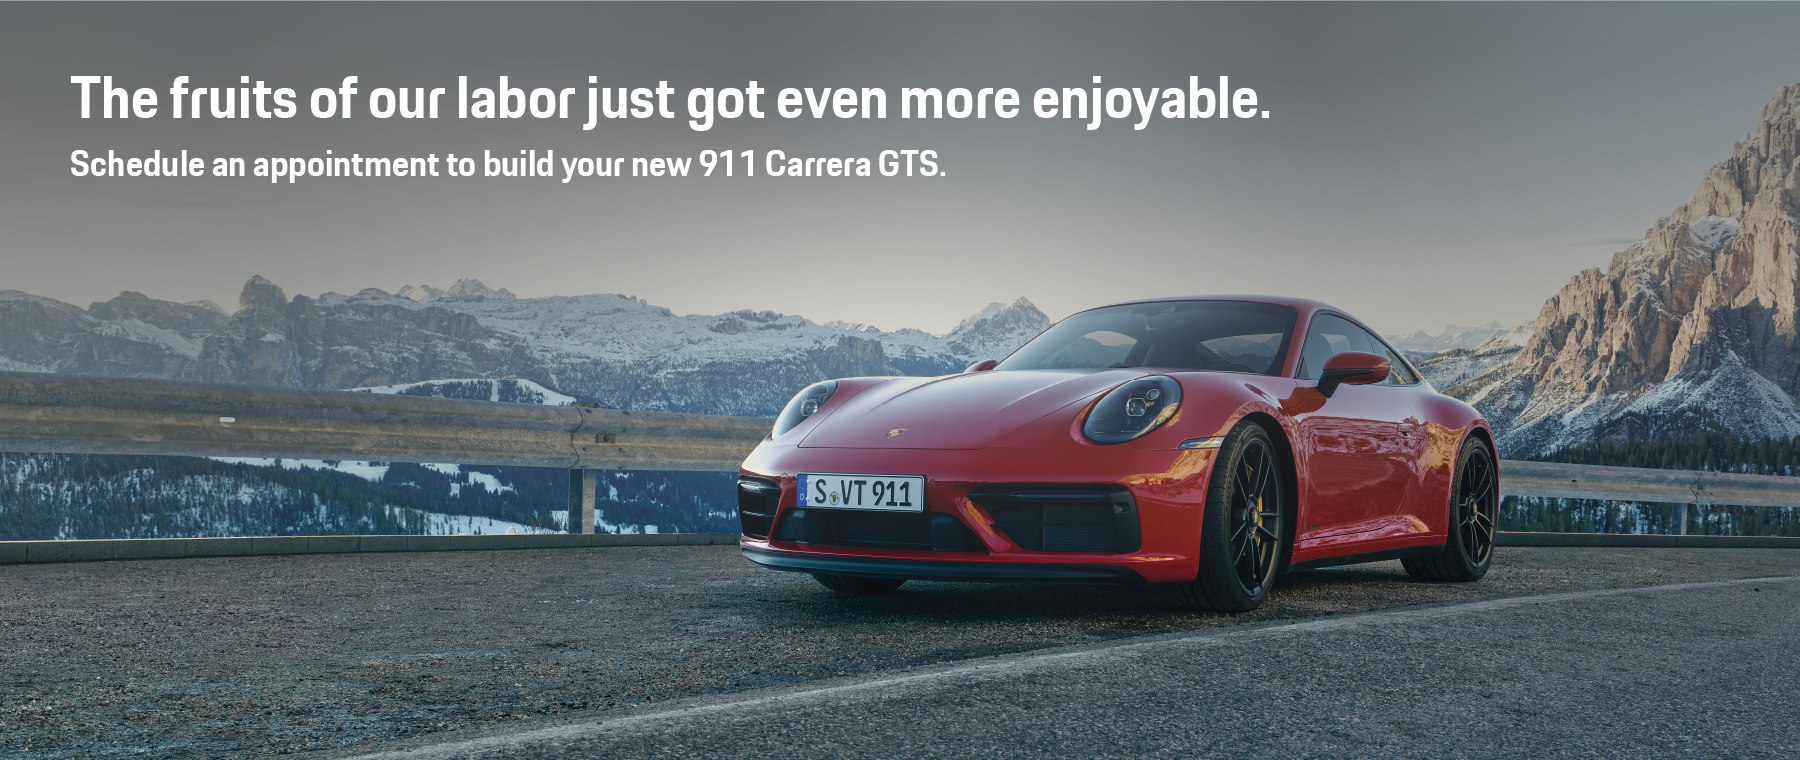 Fruits of our Labor – 911 GTS – DI